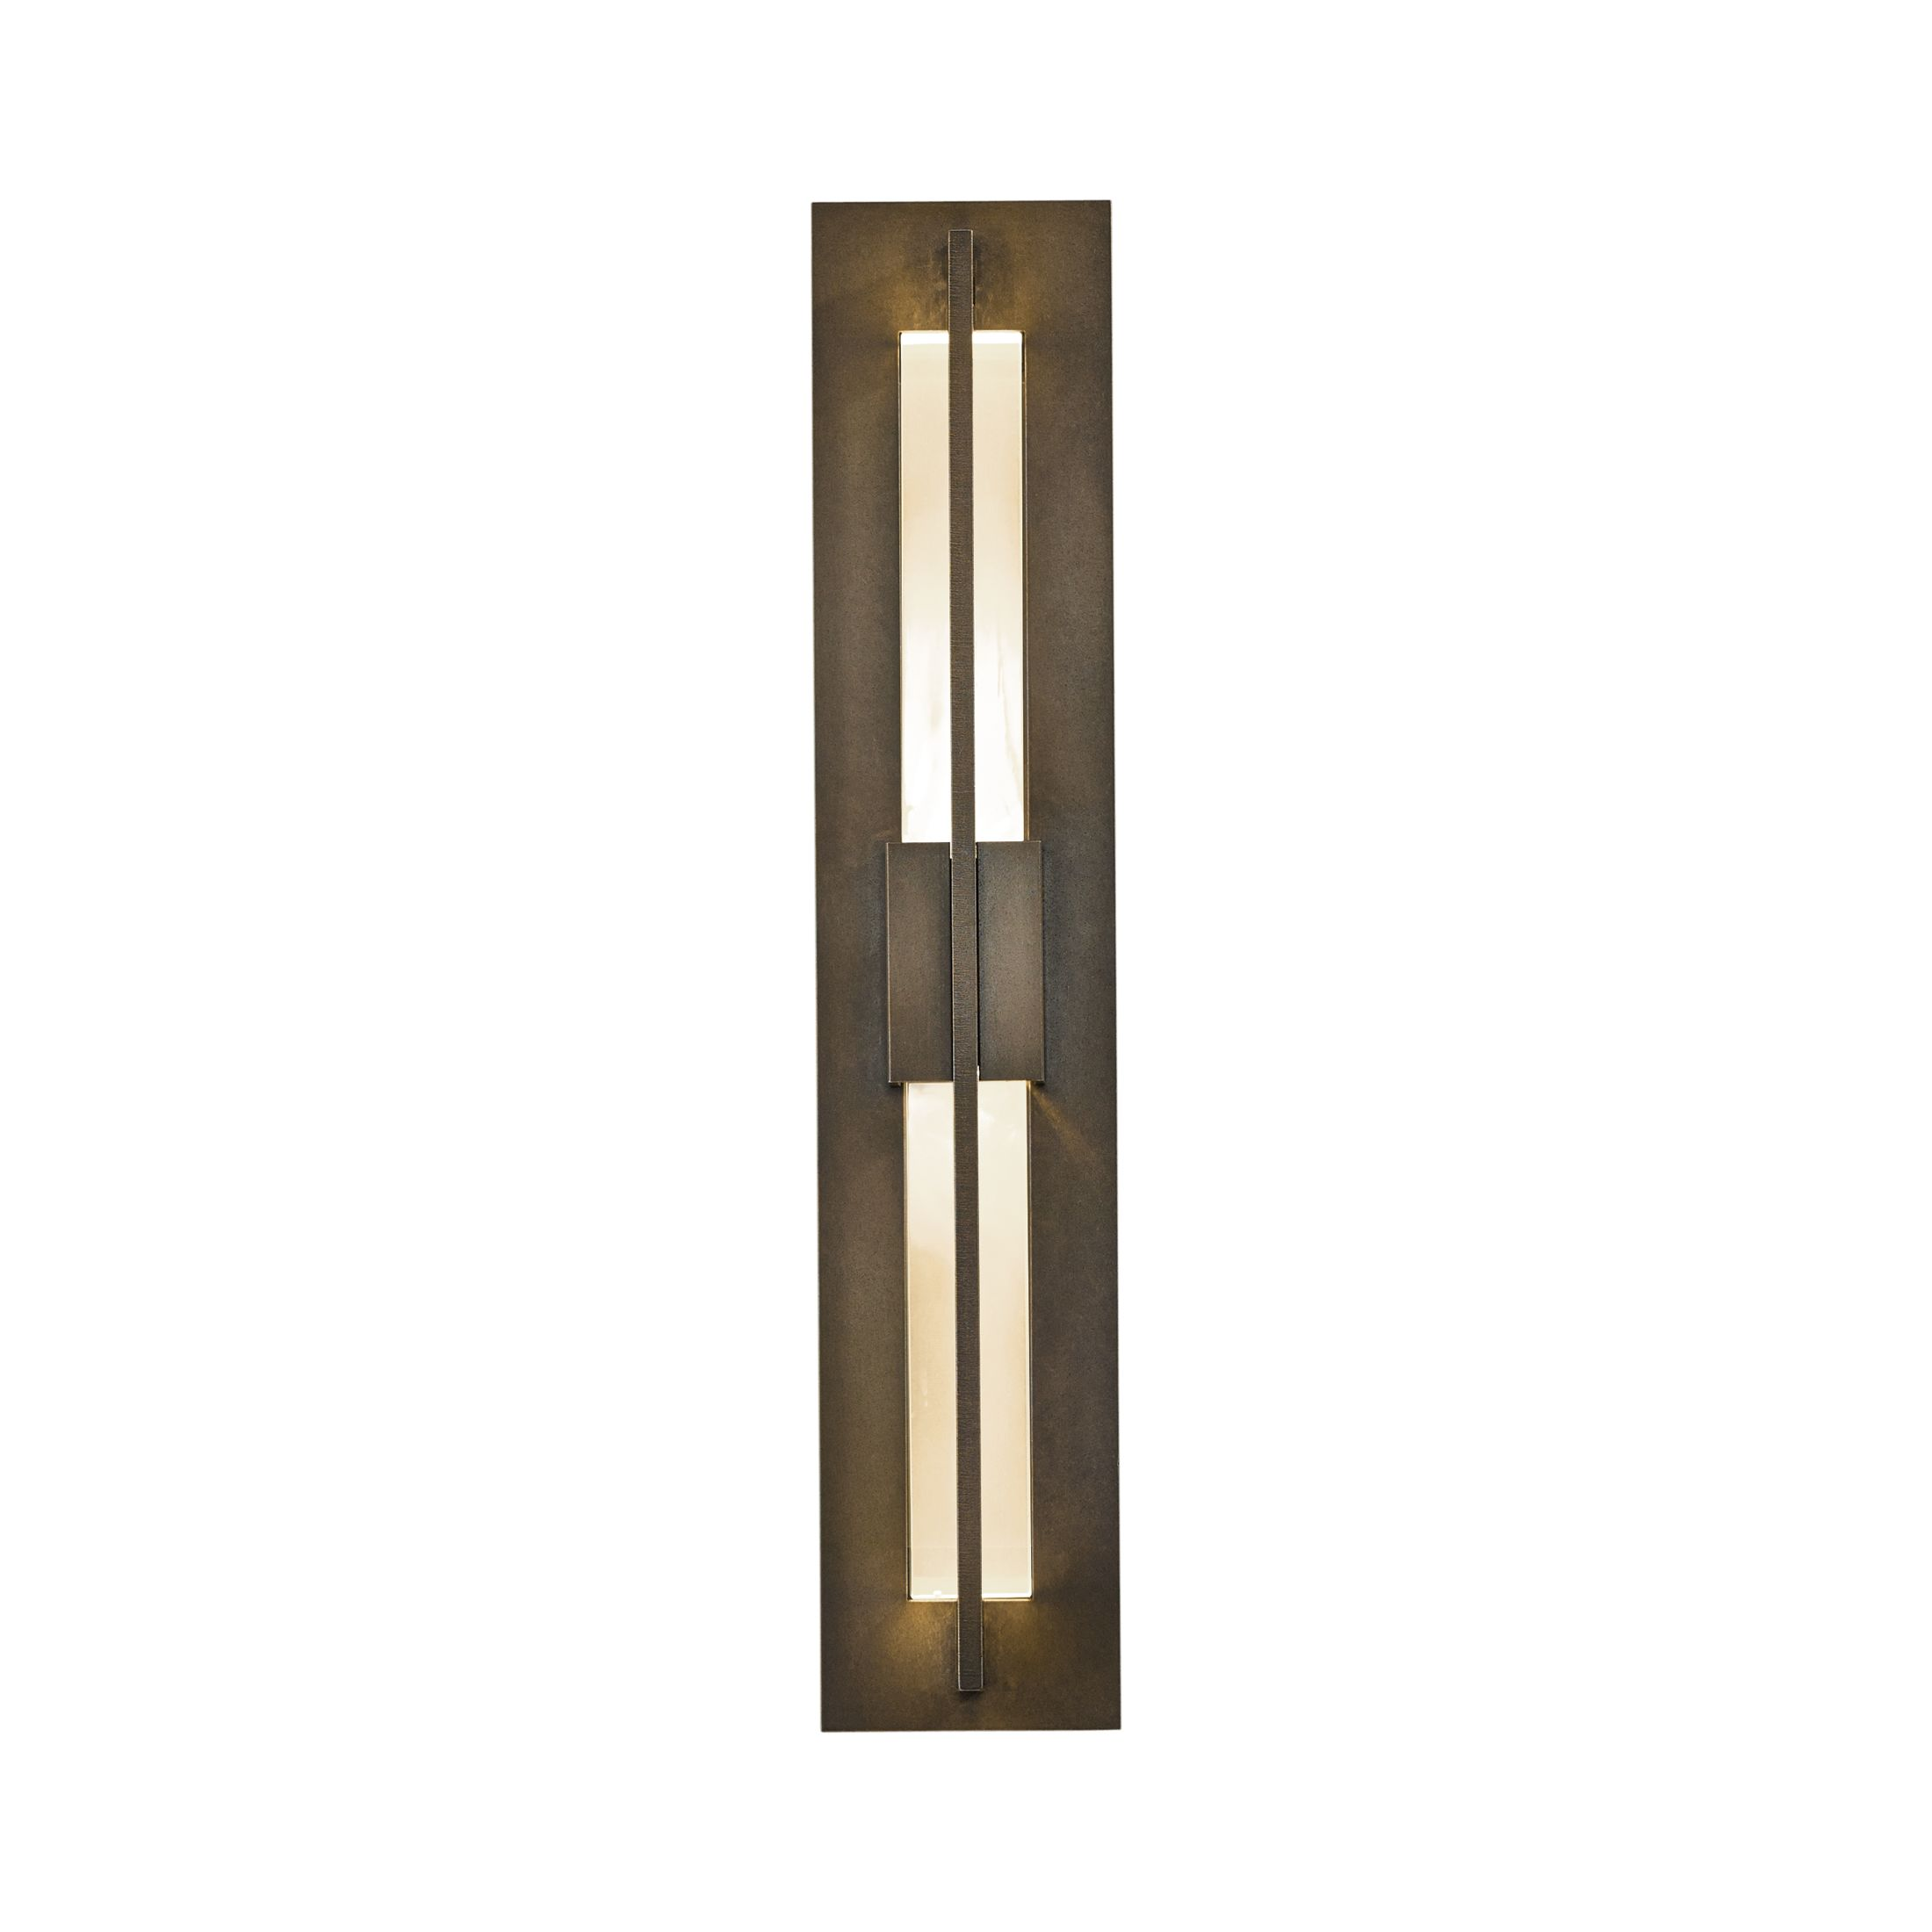 double axis small led outdoor sconce – hubbardton forge - product detail double axis small led outdoor sconce